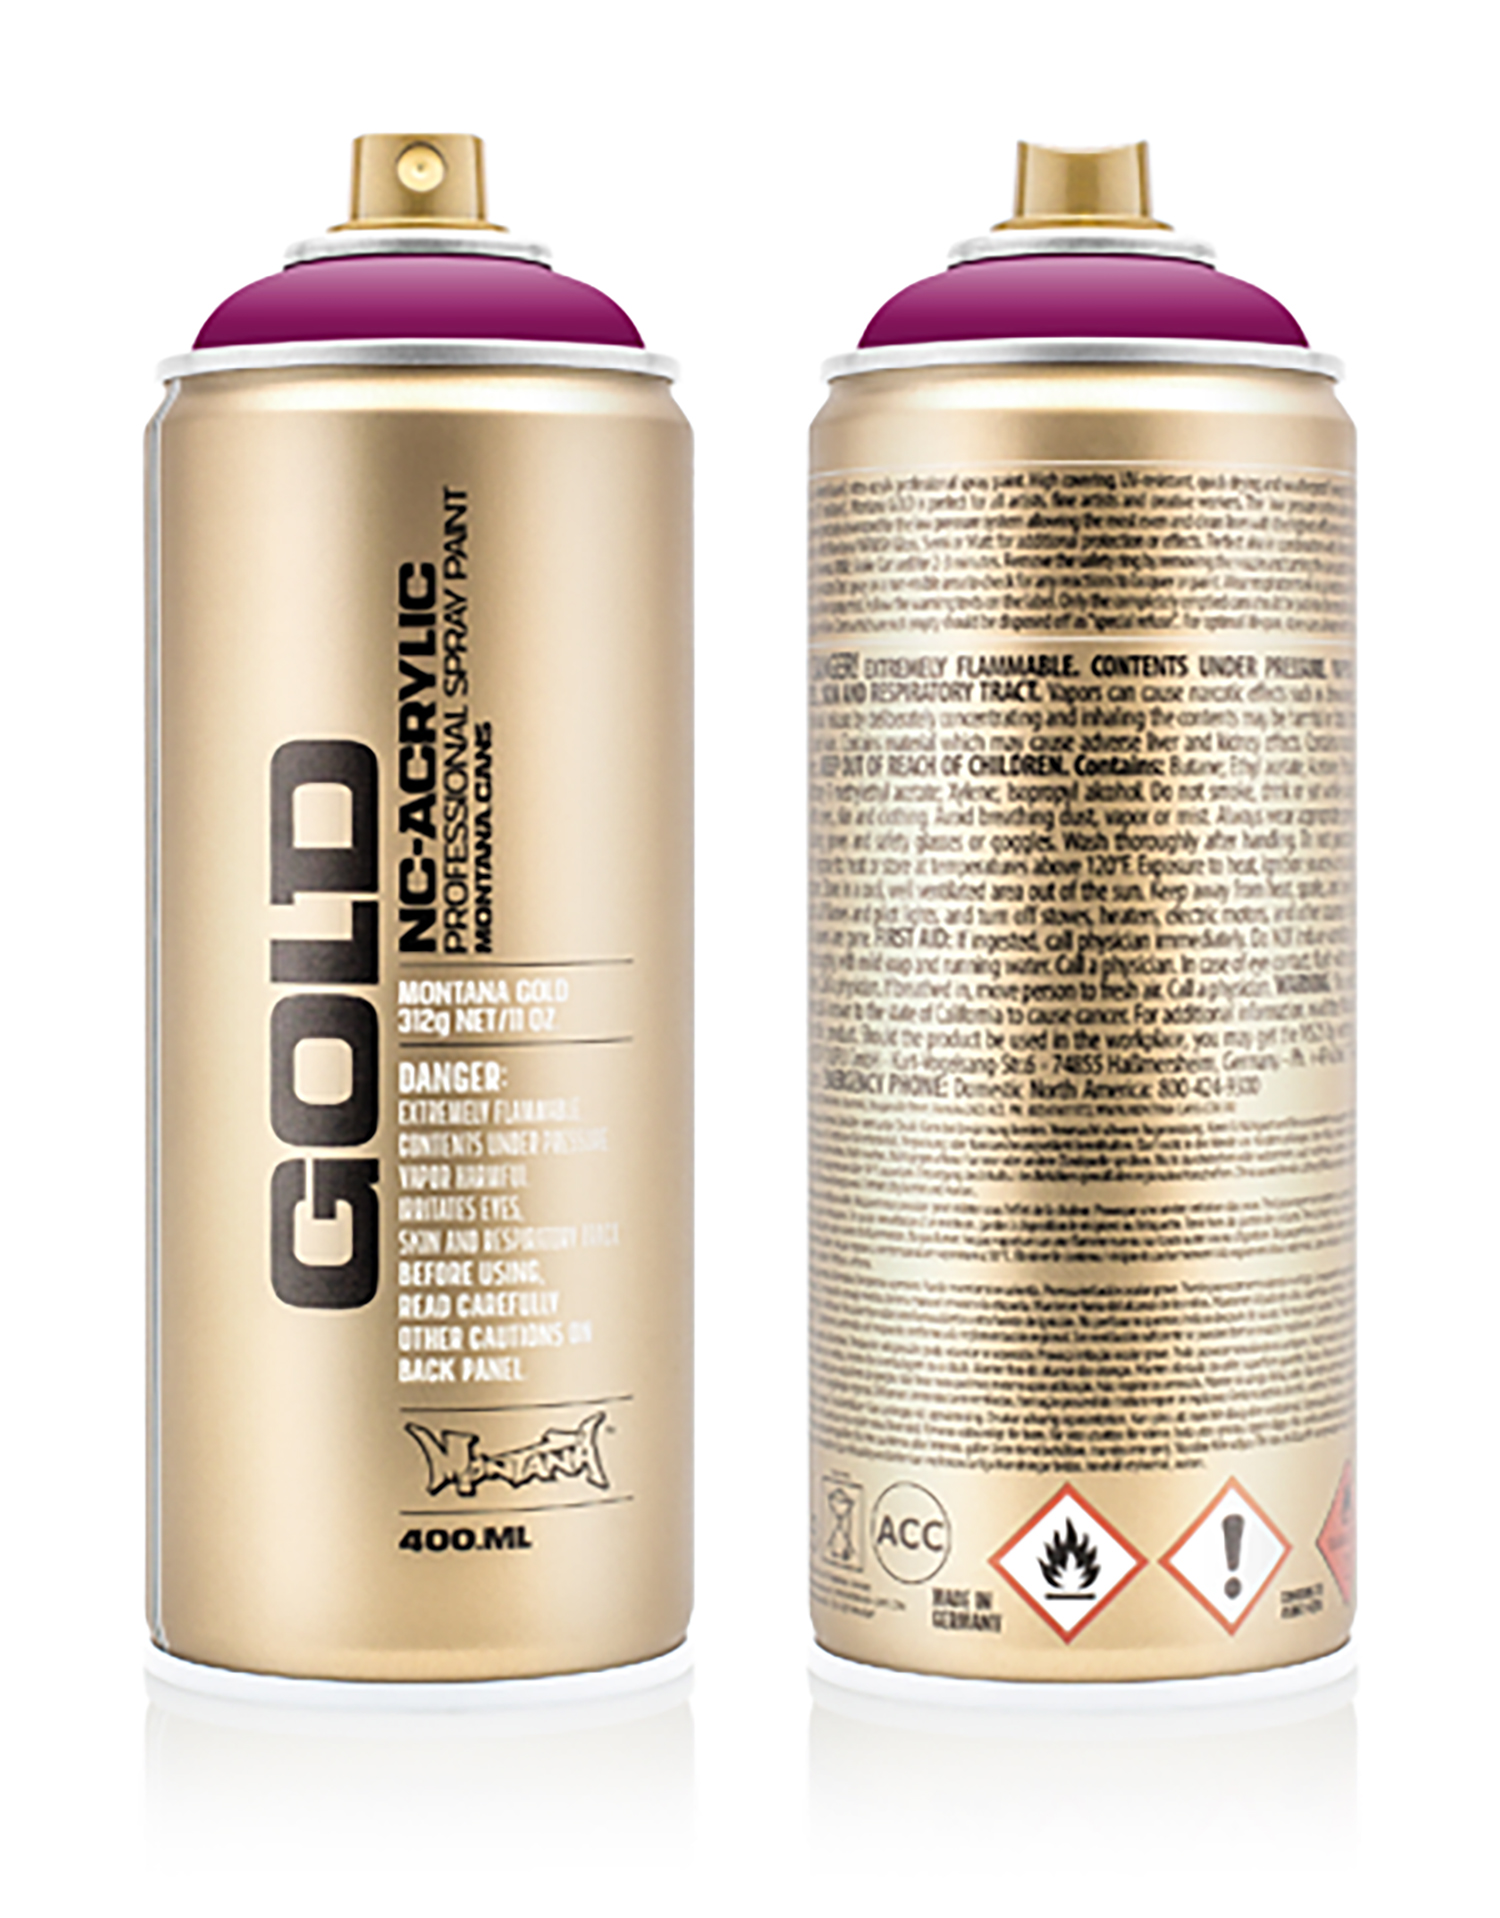 MONTANA-GOLD-SPRAY-400ML-G-3150